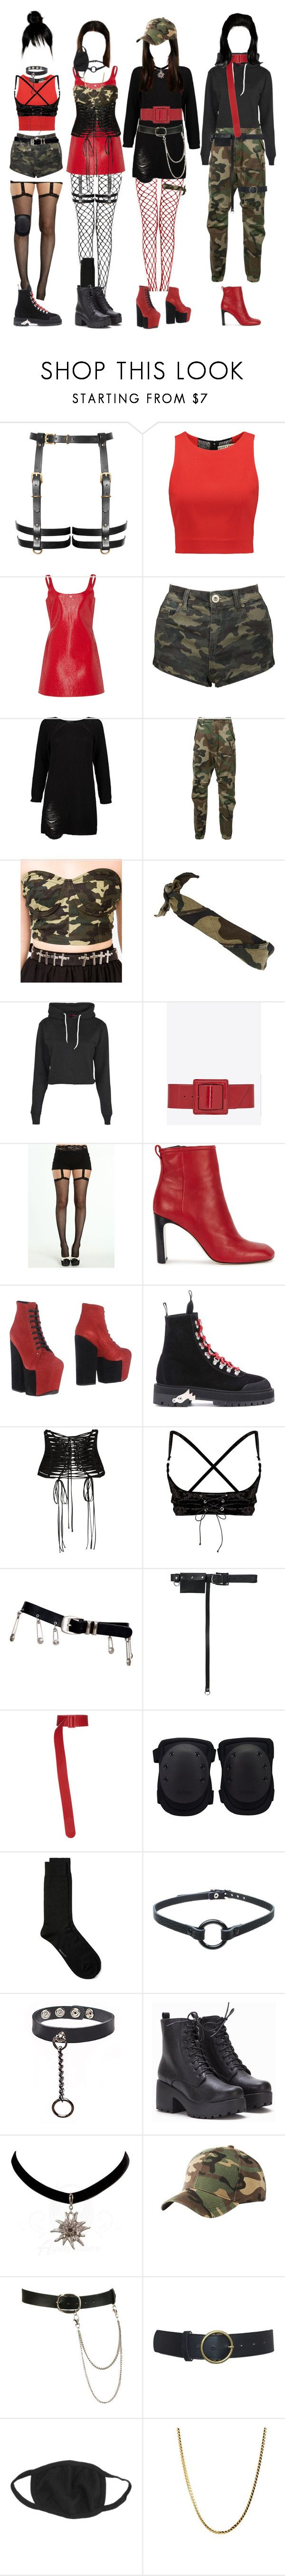 """""""[ live ] G-1 _ BLACK MAGIC ( eng. vers. ) + CREEPIN' ( KCON NY 2017 )"""" by xxzodiacentertainmentxx ❤ liked on Polyvore featuring Alice + Olivia, Boohoo, R13, Forever 21, River Island, Yves Saint Laurent, rag & bone, Jeffrey Campbell, Off-White and Dolce&Gabbana"""